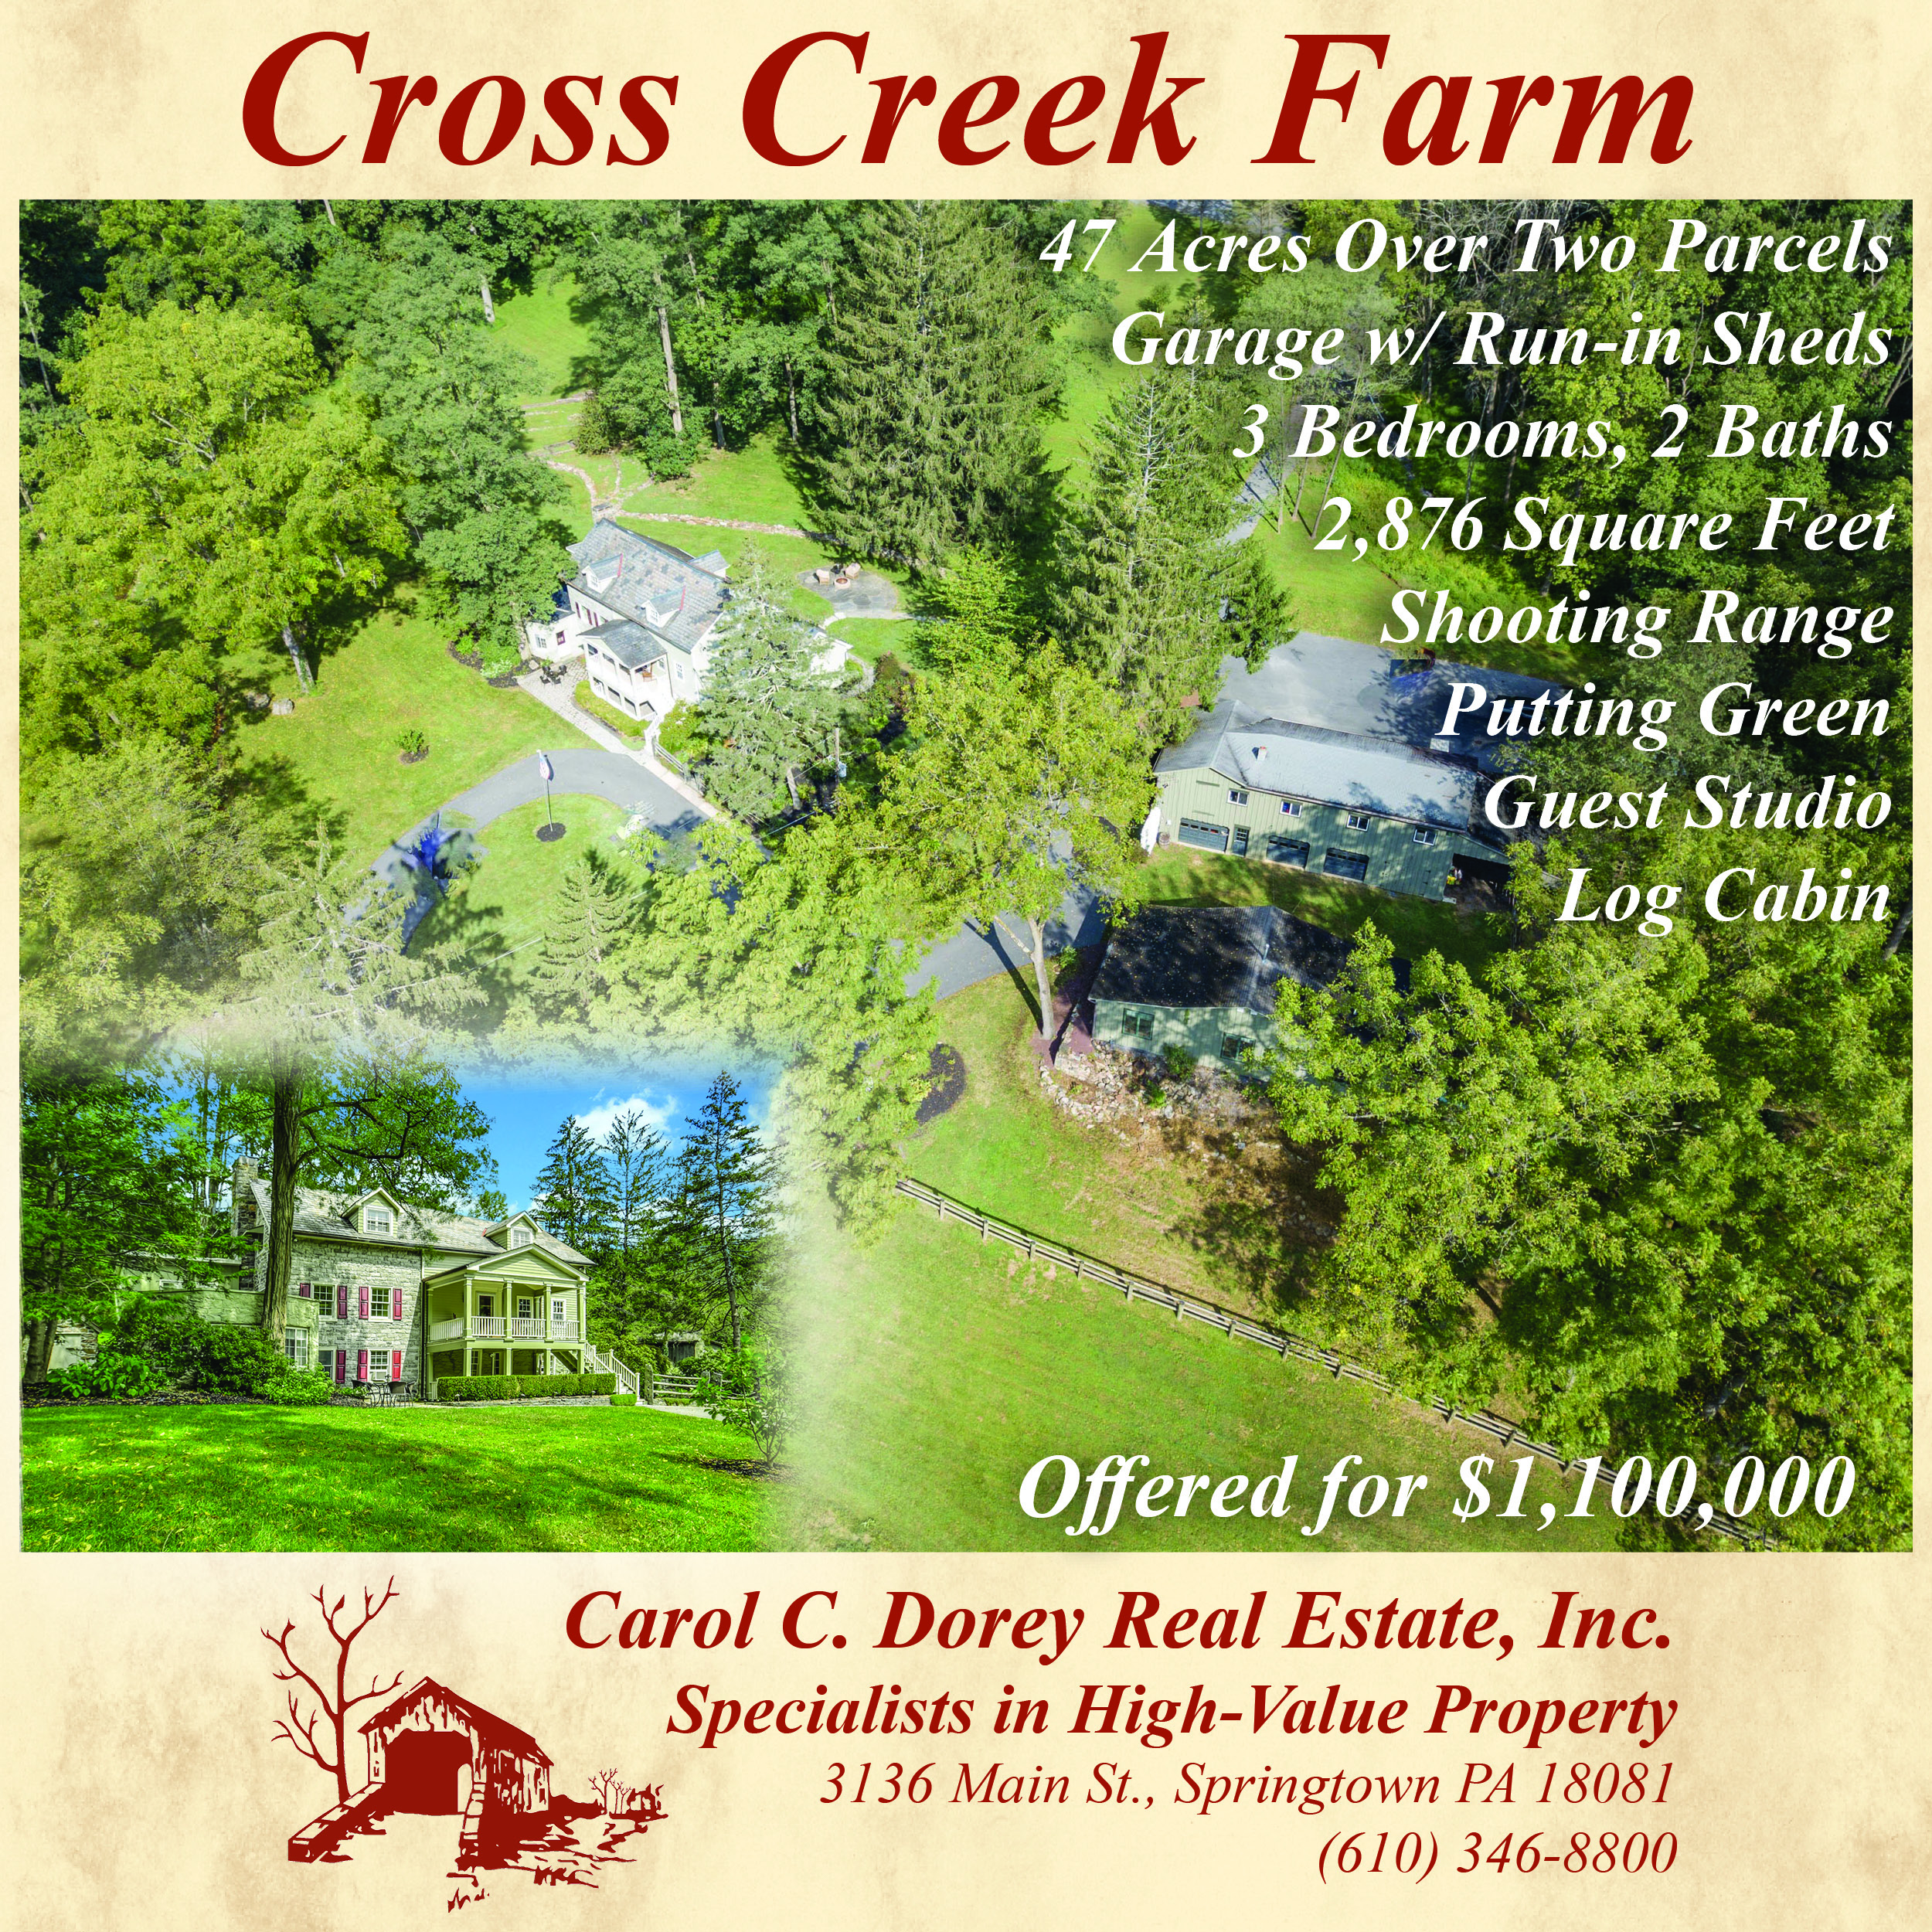 Cross Creek Farm